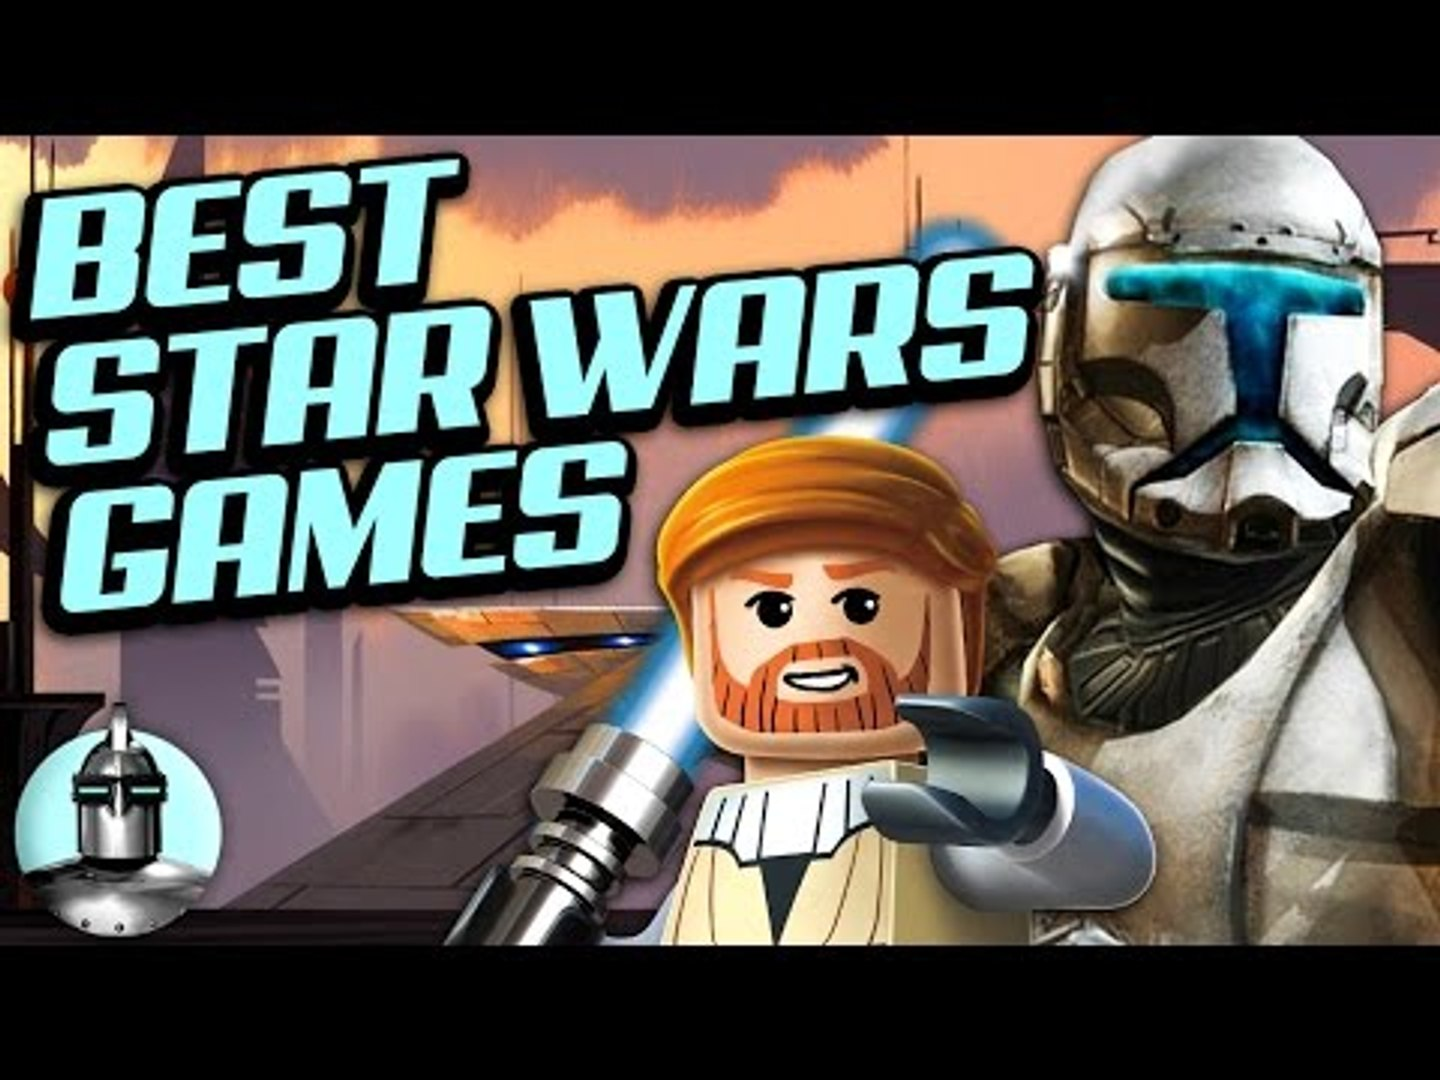 9 Best Star Wars Games You NEED To Play - Star Wars Week | The Leaderboard